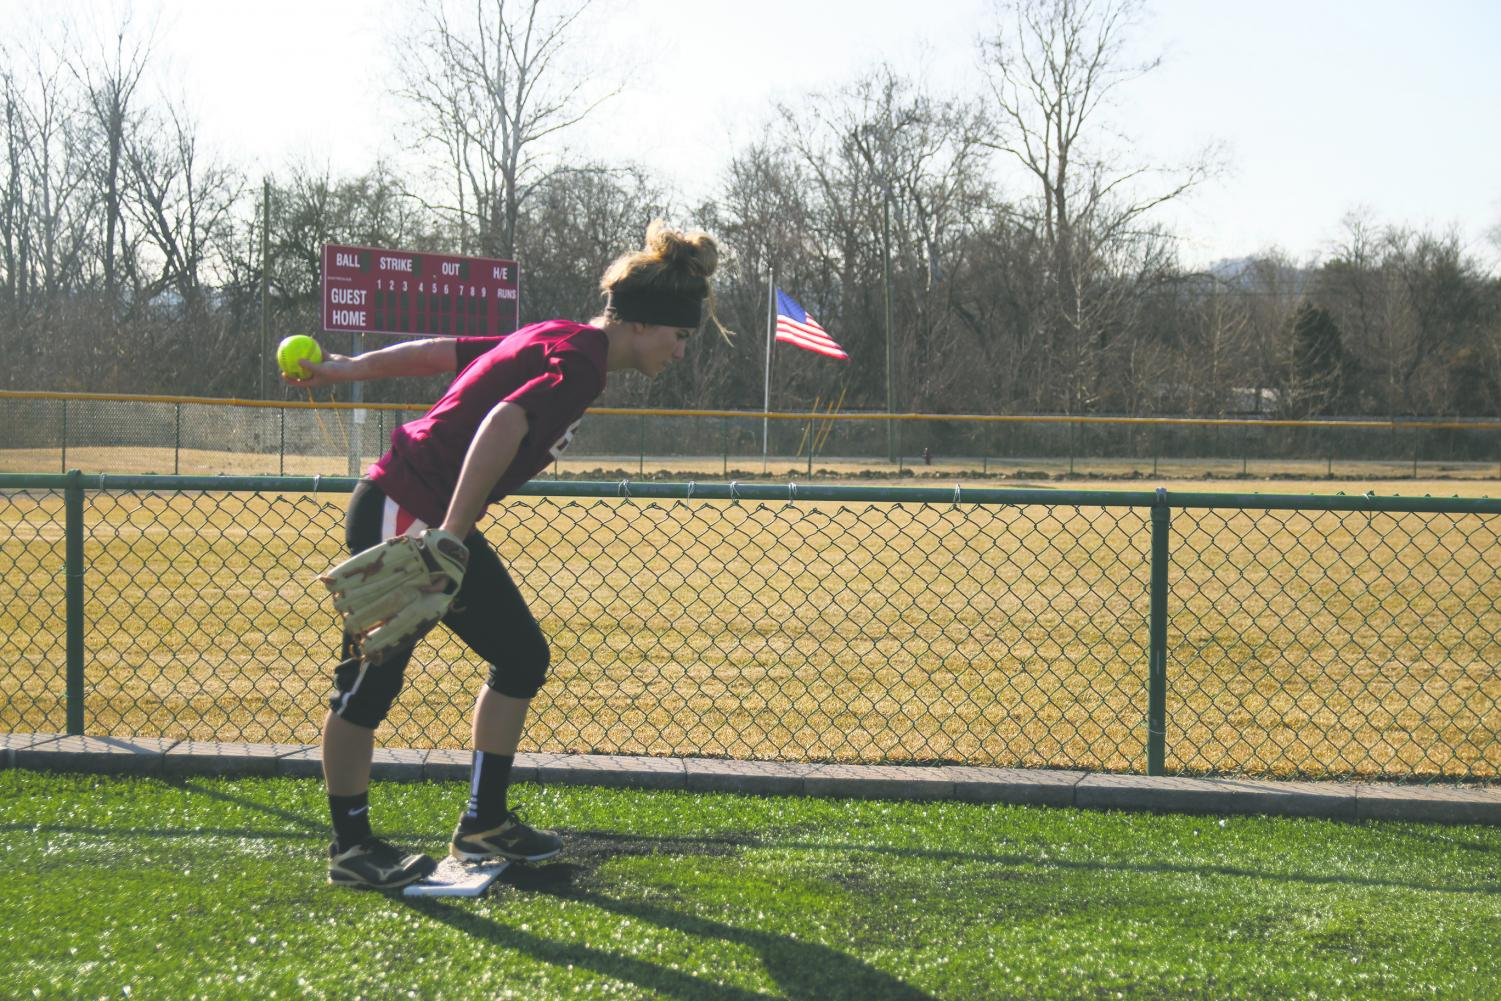 Morgan Keefer, junior pitcher and outfielder, winds up for a pitch at practice. Keefer is part of the group of returning players Coach Witten hopes to lead the Grenadiers this year.